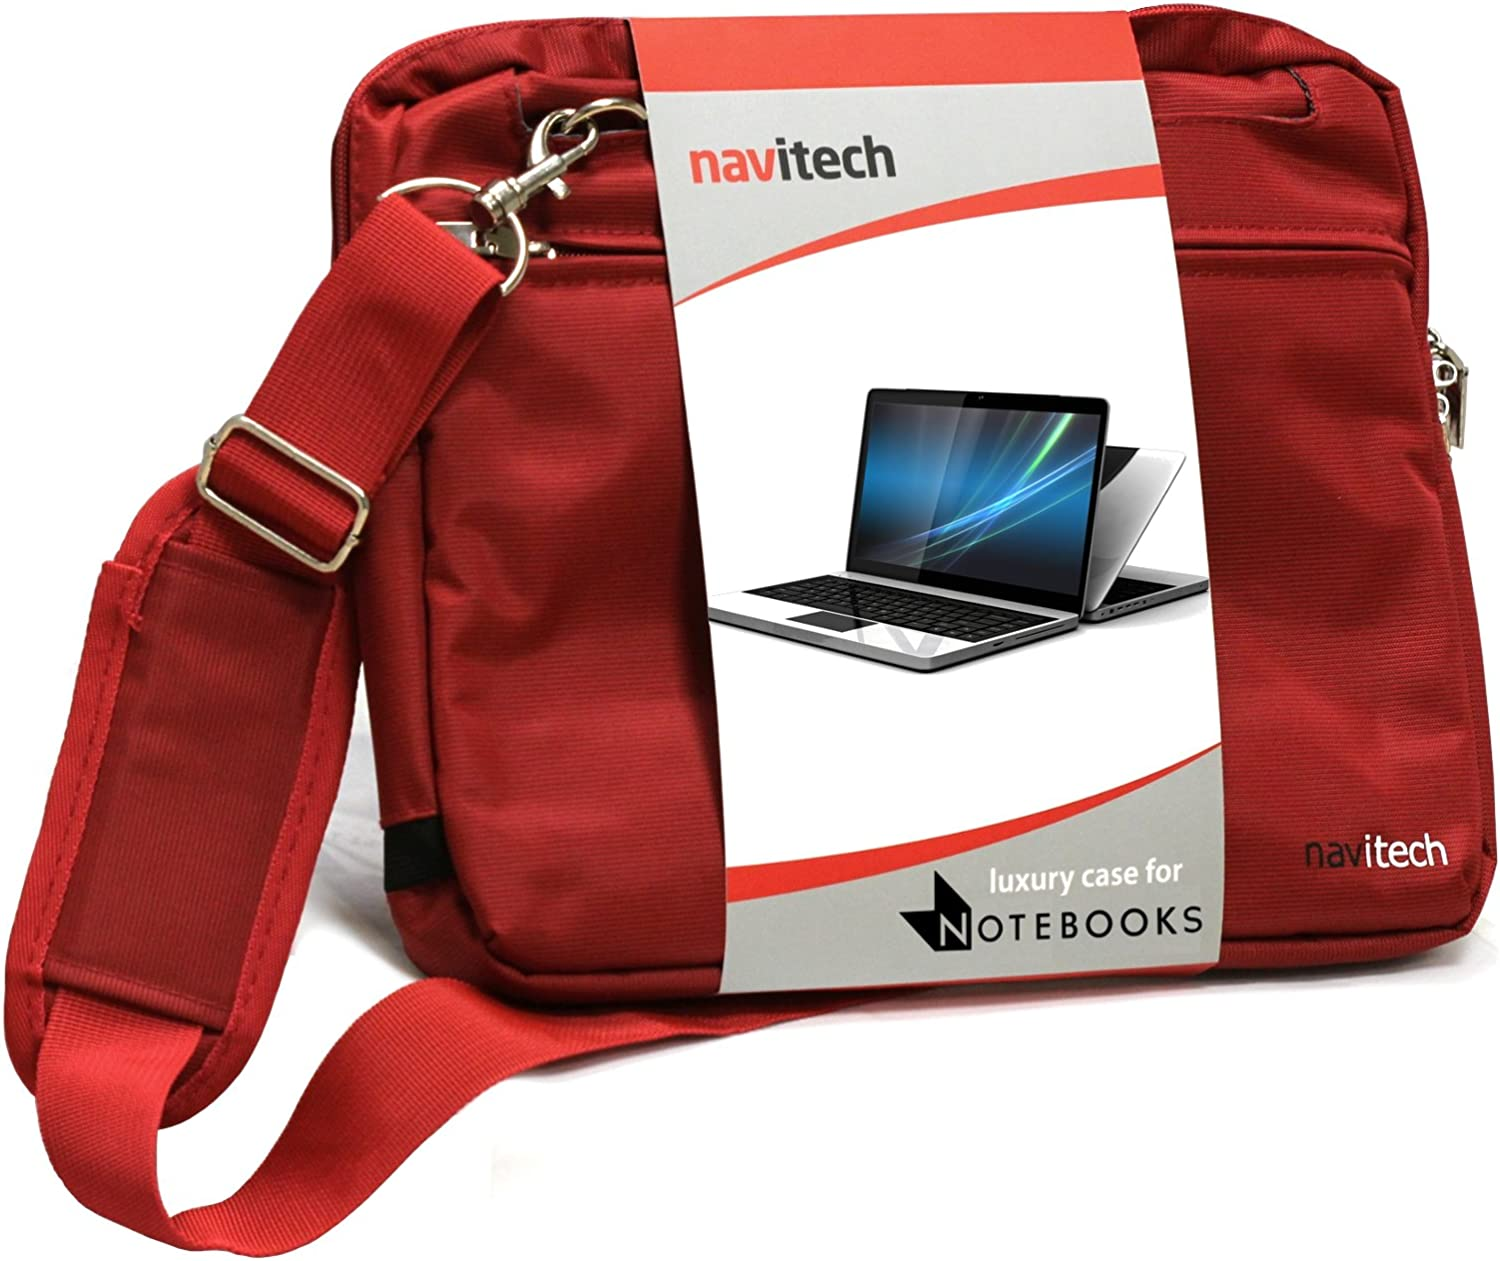 Navitech Red 11.6-Inch Laptop/Notebook/Ultrabook Case/Bag Compatible with The Acer C720 Chromebook/Acer C7 Chromebook/Samsung Chromebook/HP Chromebook 11